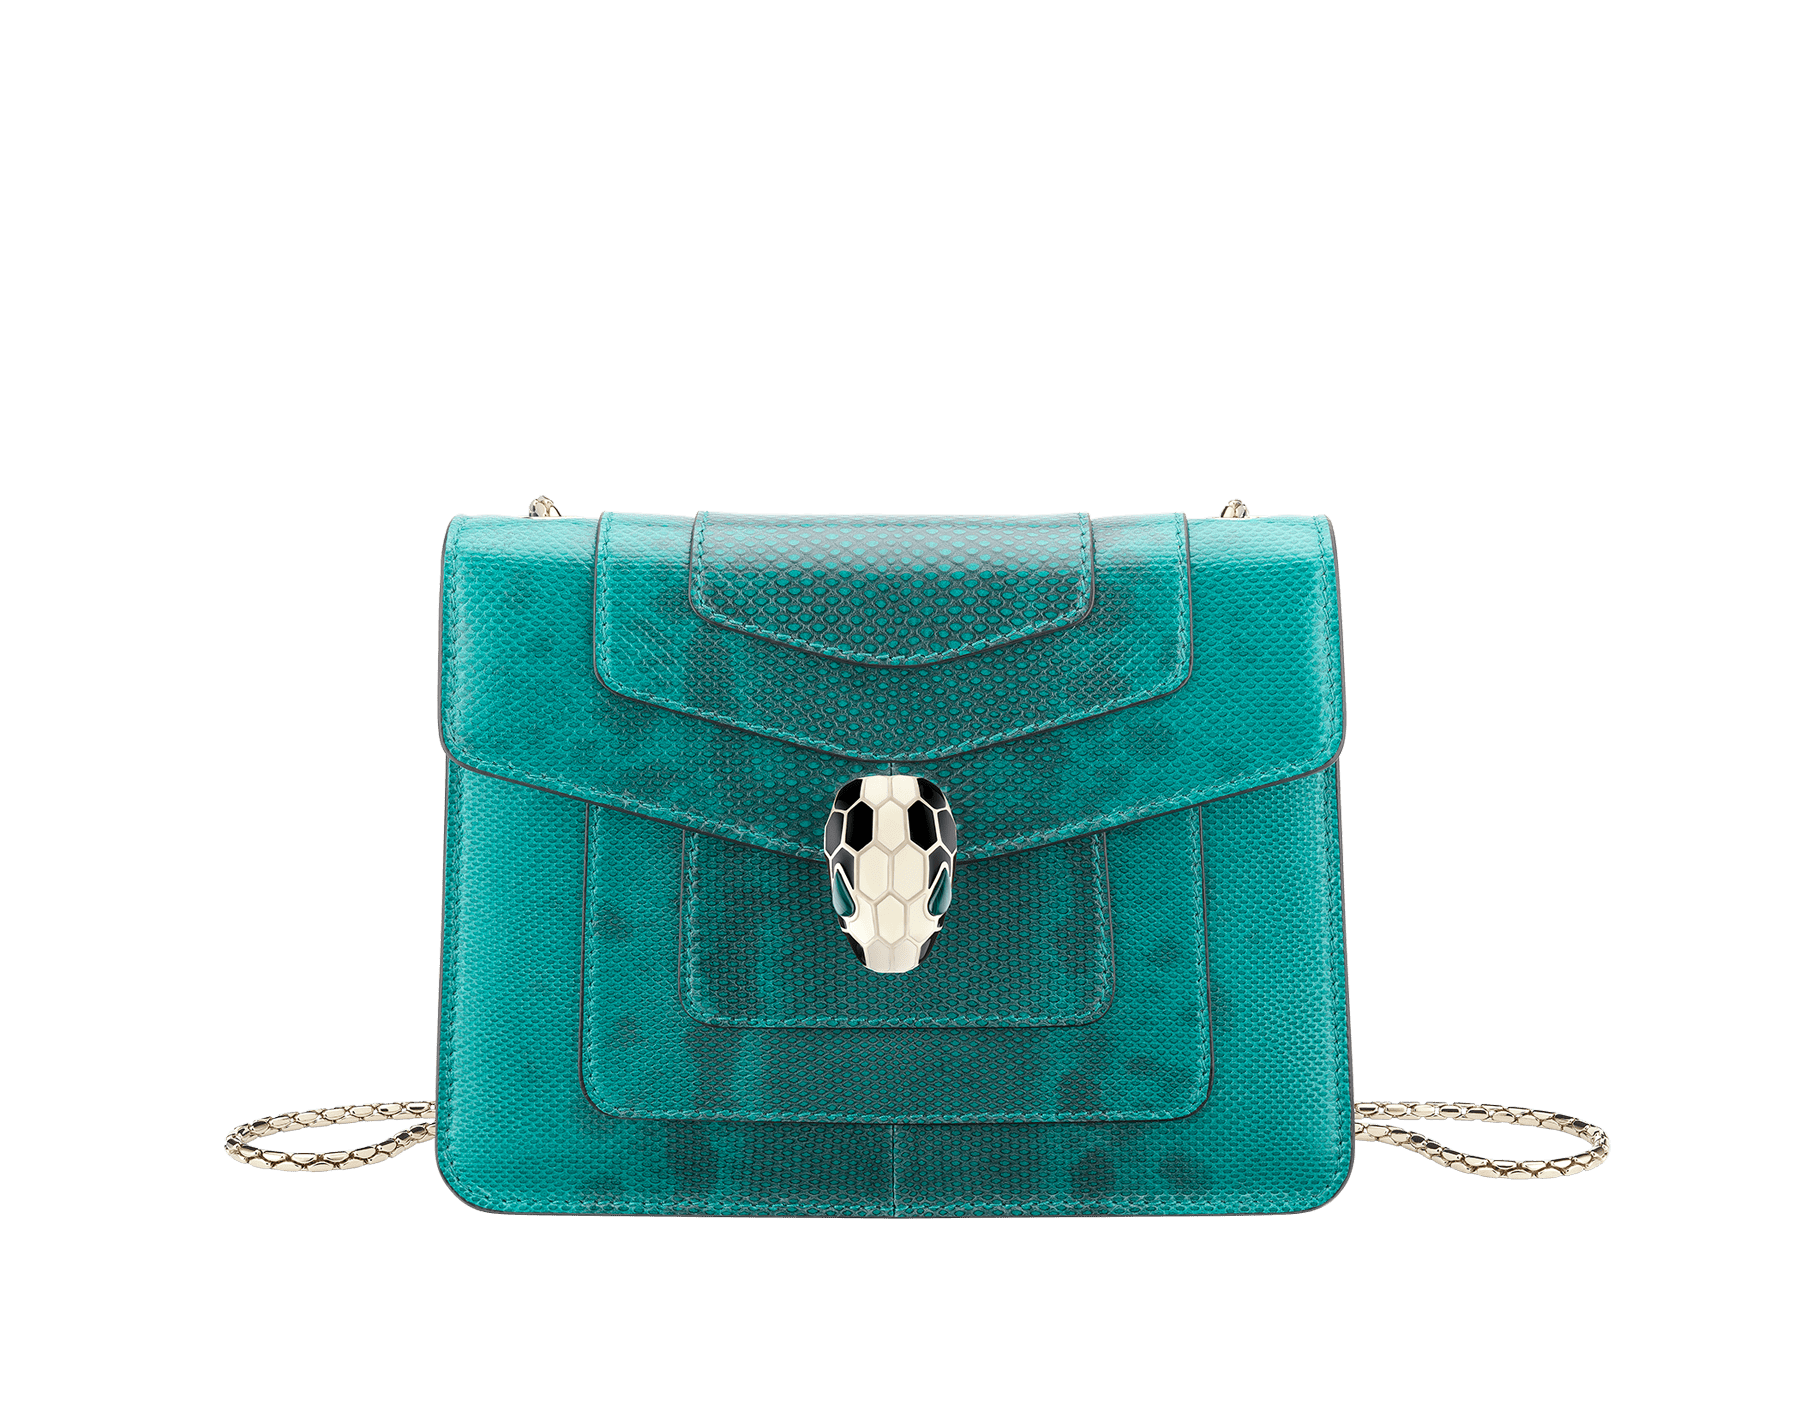 Serpenti Forever crossbody bag in tropical turquoise shiny karung skin. Snakehead closure in light gold plated brass decorated with black and white enamel, and green malachite eyes. 287912 image 1